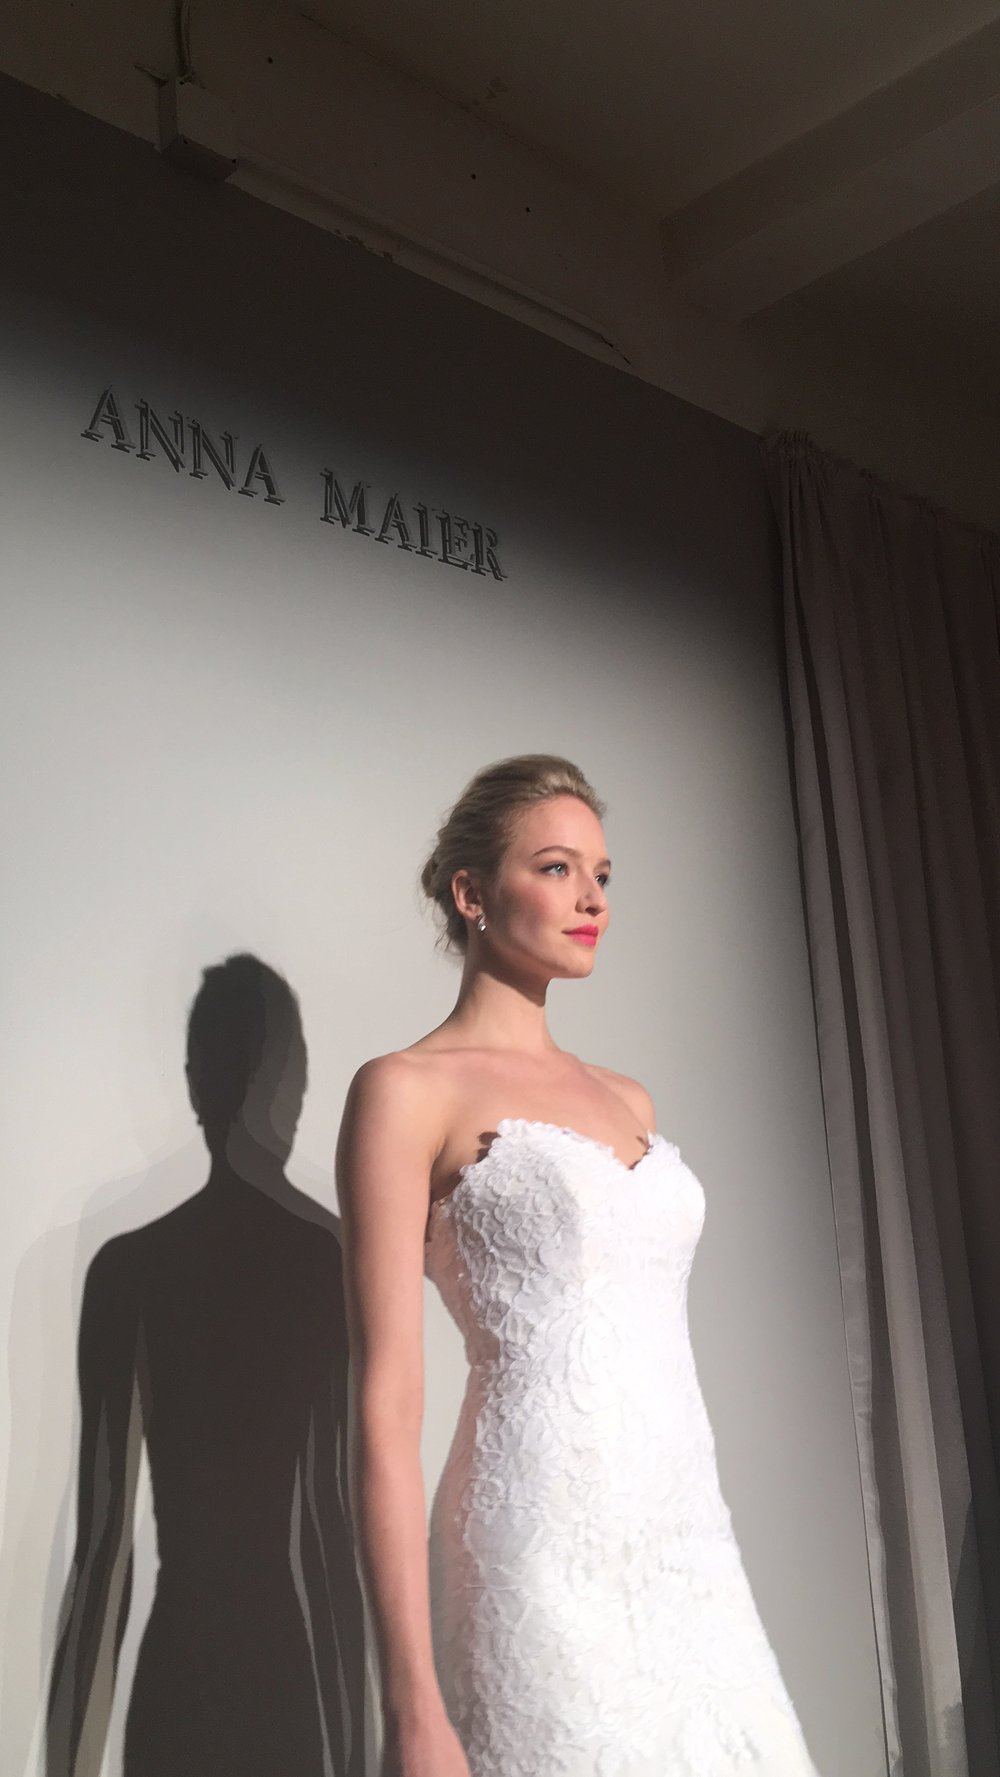 Las Vegas Wedding Planner Andrea Eppolito attends the Anna Maier couture show at Bridal Fashion Week 2017 in NYC.  Lace Dress